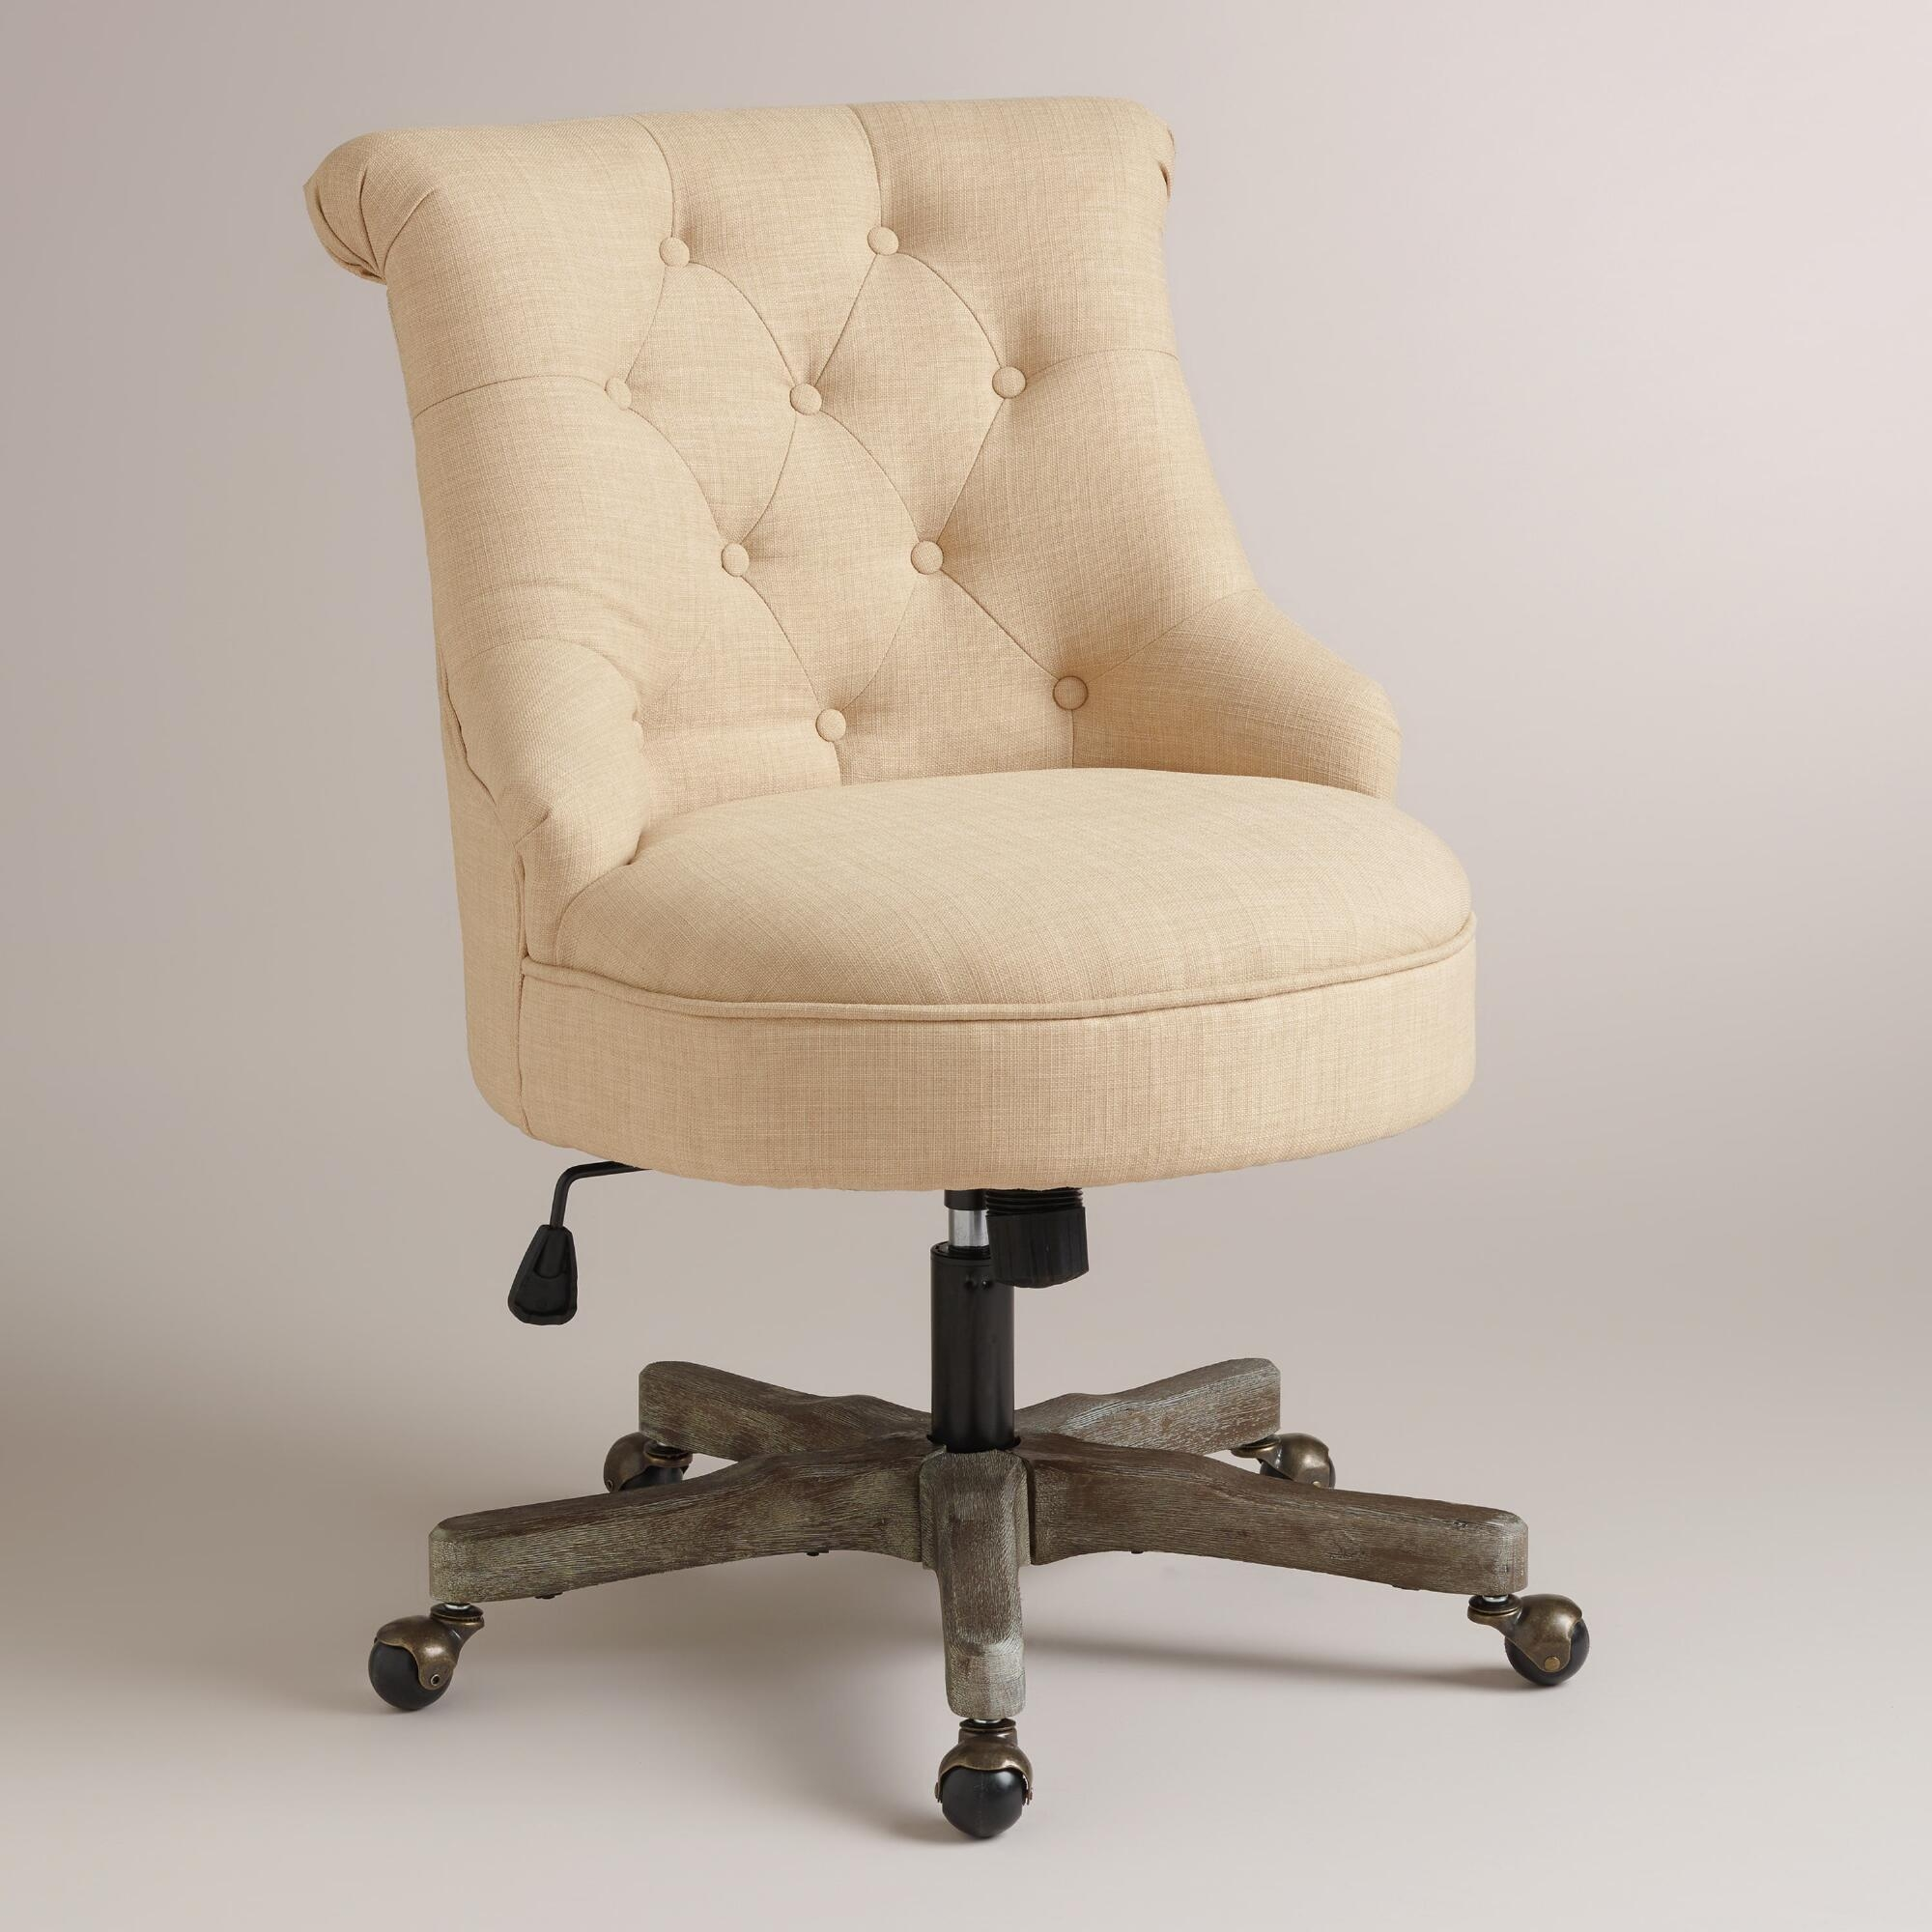 Good Looking Upholstered Desk Chair Pertaining To Sofa Desk Chairs (Image 4 of 20)